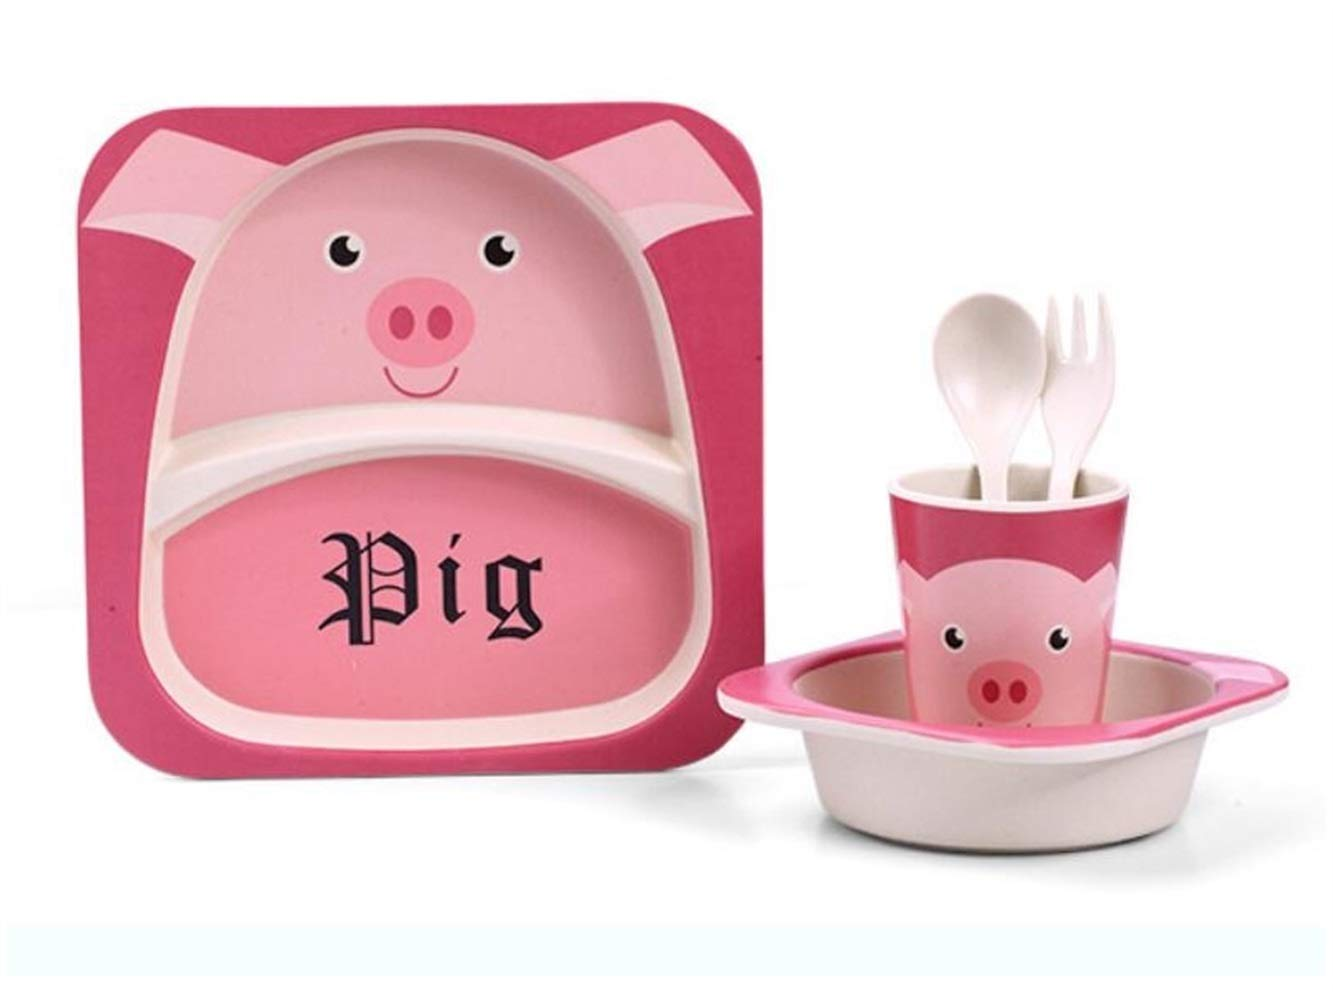 Yuchoi Contemporary Bamboo Fiber Cartoon Animal Dish Children Plate Fork Spoon Cup Set for Kids(Pig)